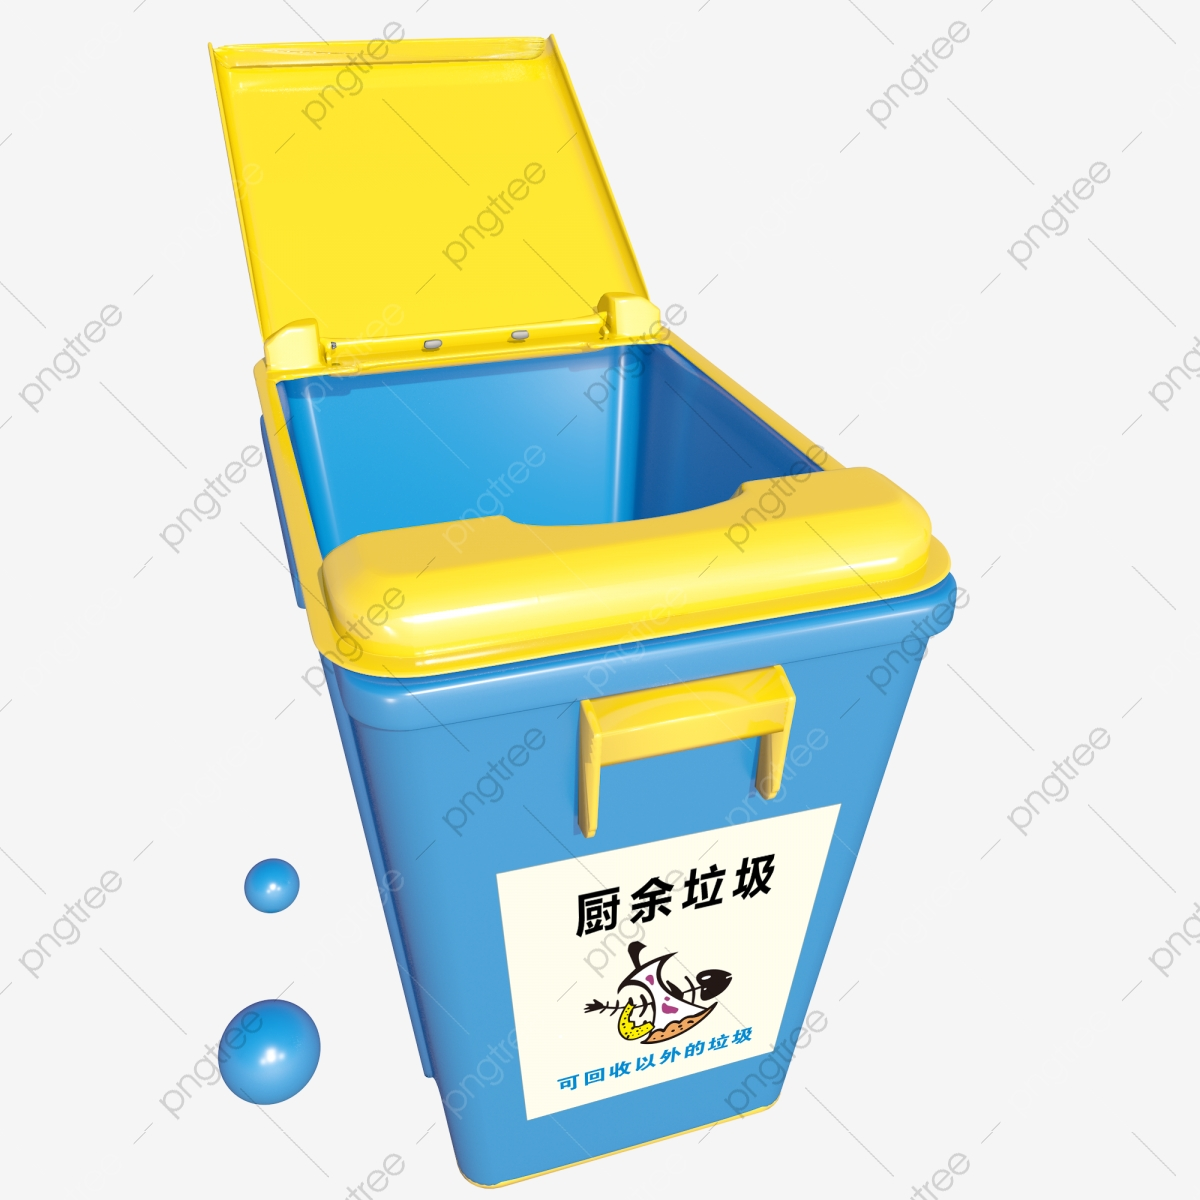 C4d Sky Blue Kitchen Waste Trash Can Trash Can C4d Blue Png Transparent Clipart Image And Psd File For Free Download